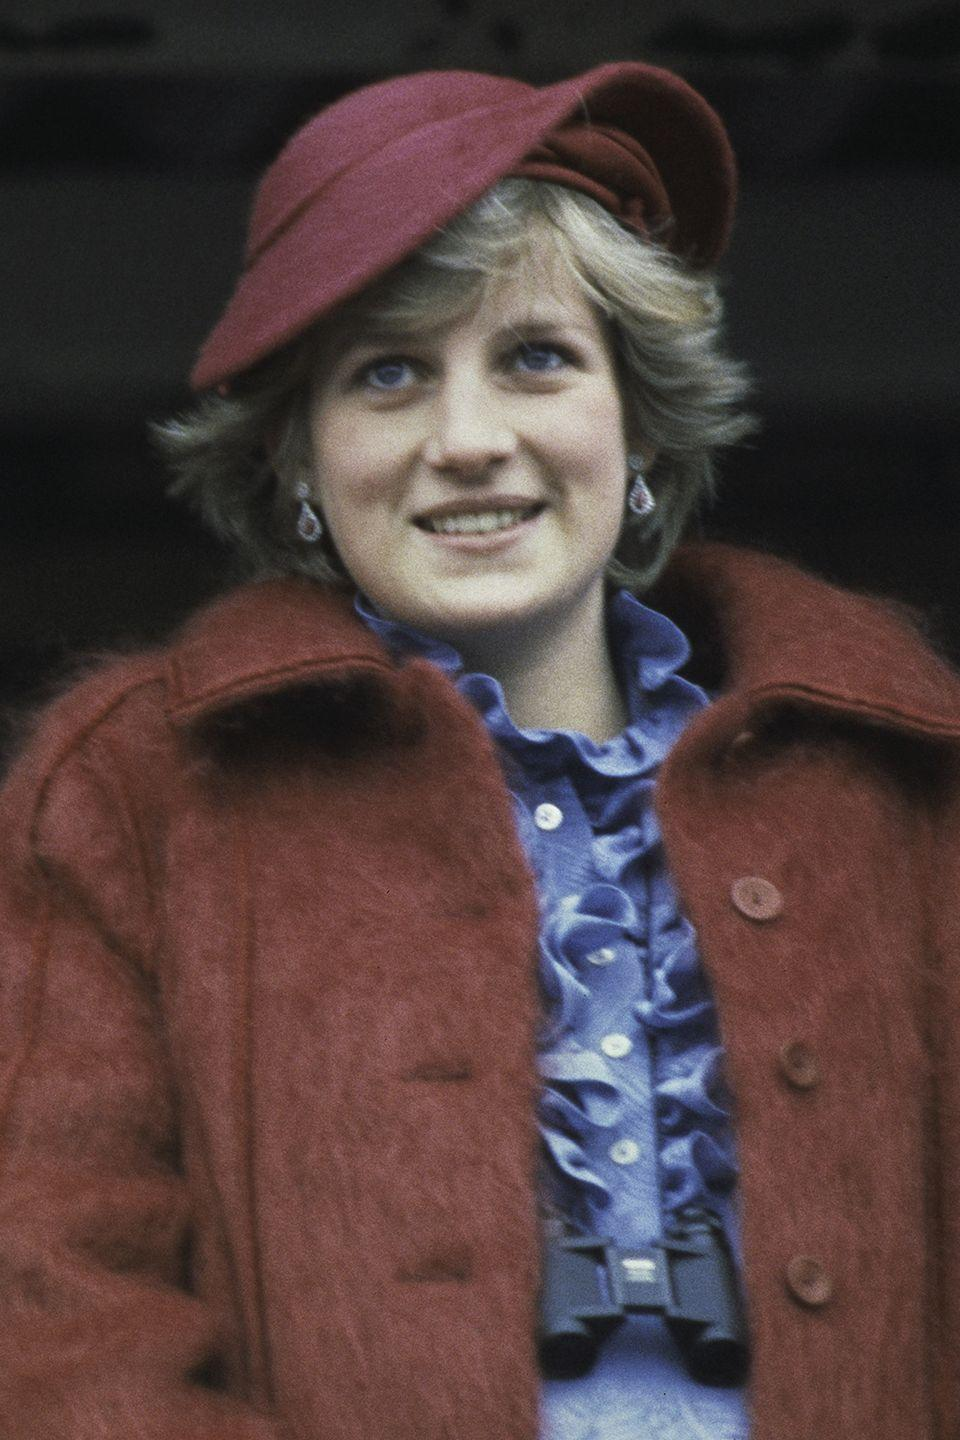 <p>Wearing a burgundy hat while attending the Aintree racecourse for the Grand National. </p>